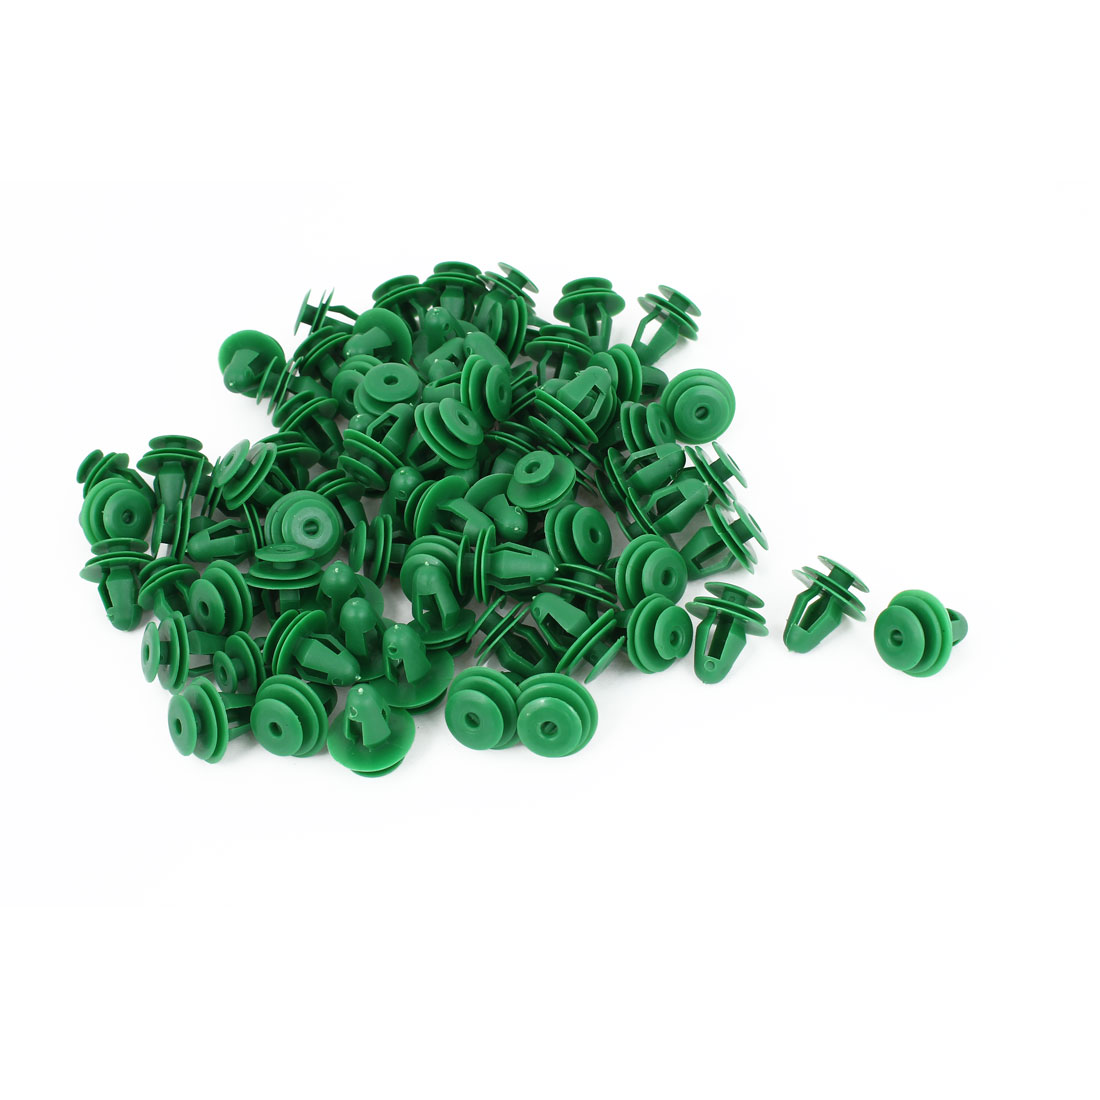 100pcs Car Green Plastic Push Type Fasteners Clip Rivet for 10mm Hole Dia